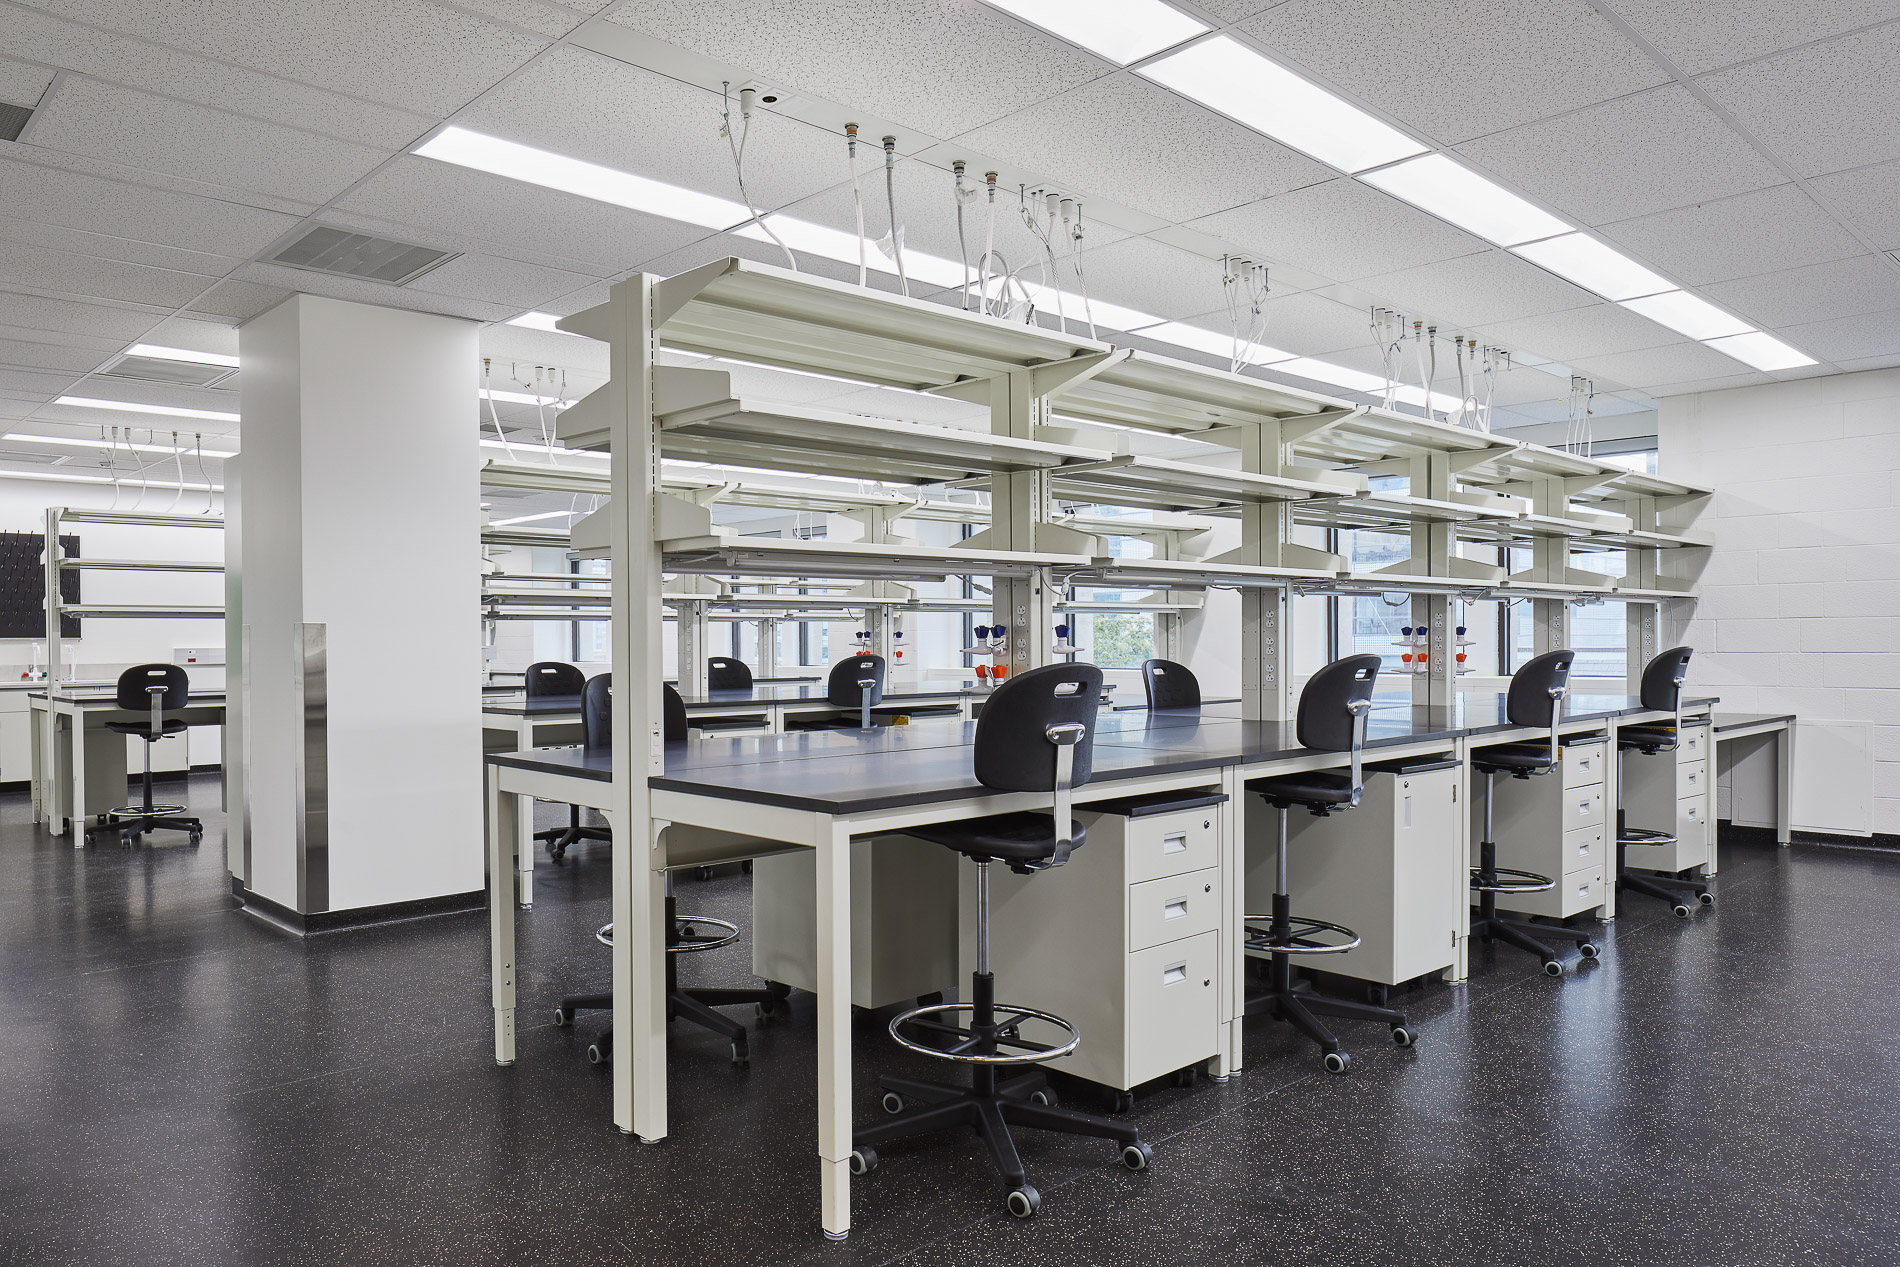 Newly renovated labs in the Medical Sciences Building (Younes Bounhar, doublespace photography)